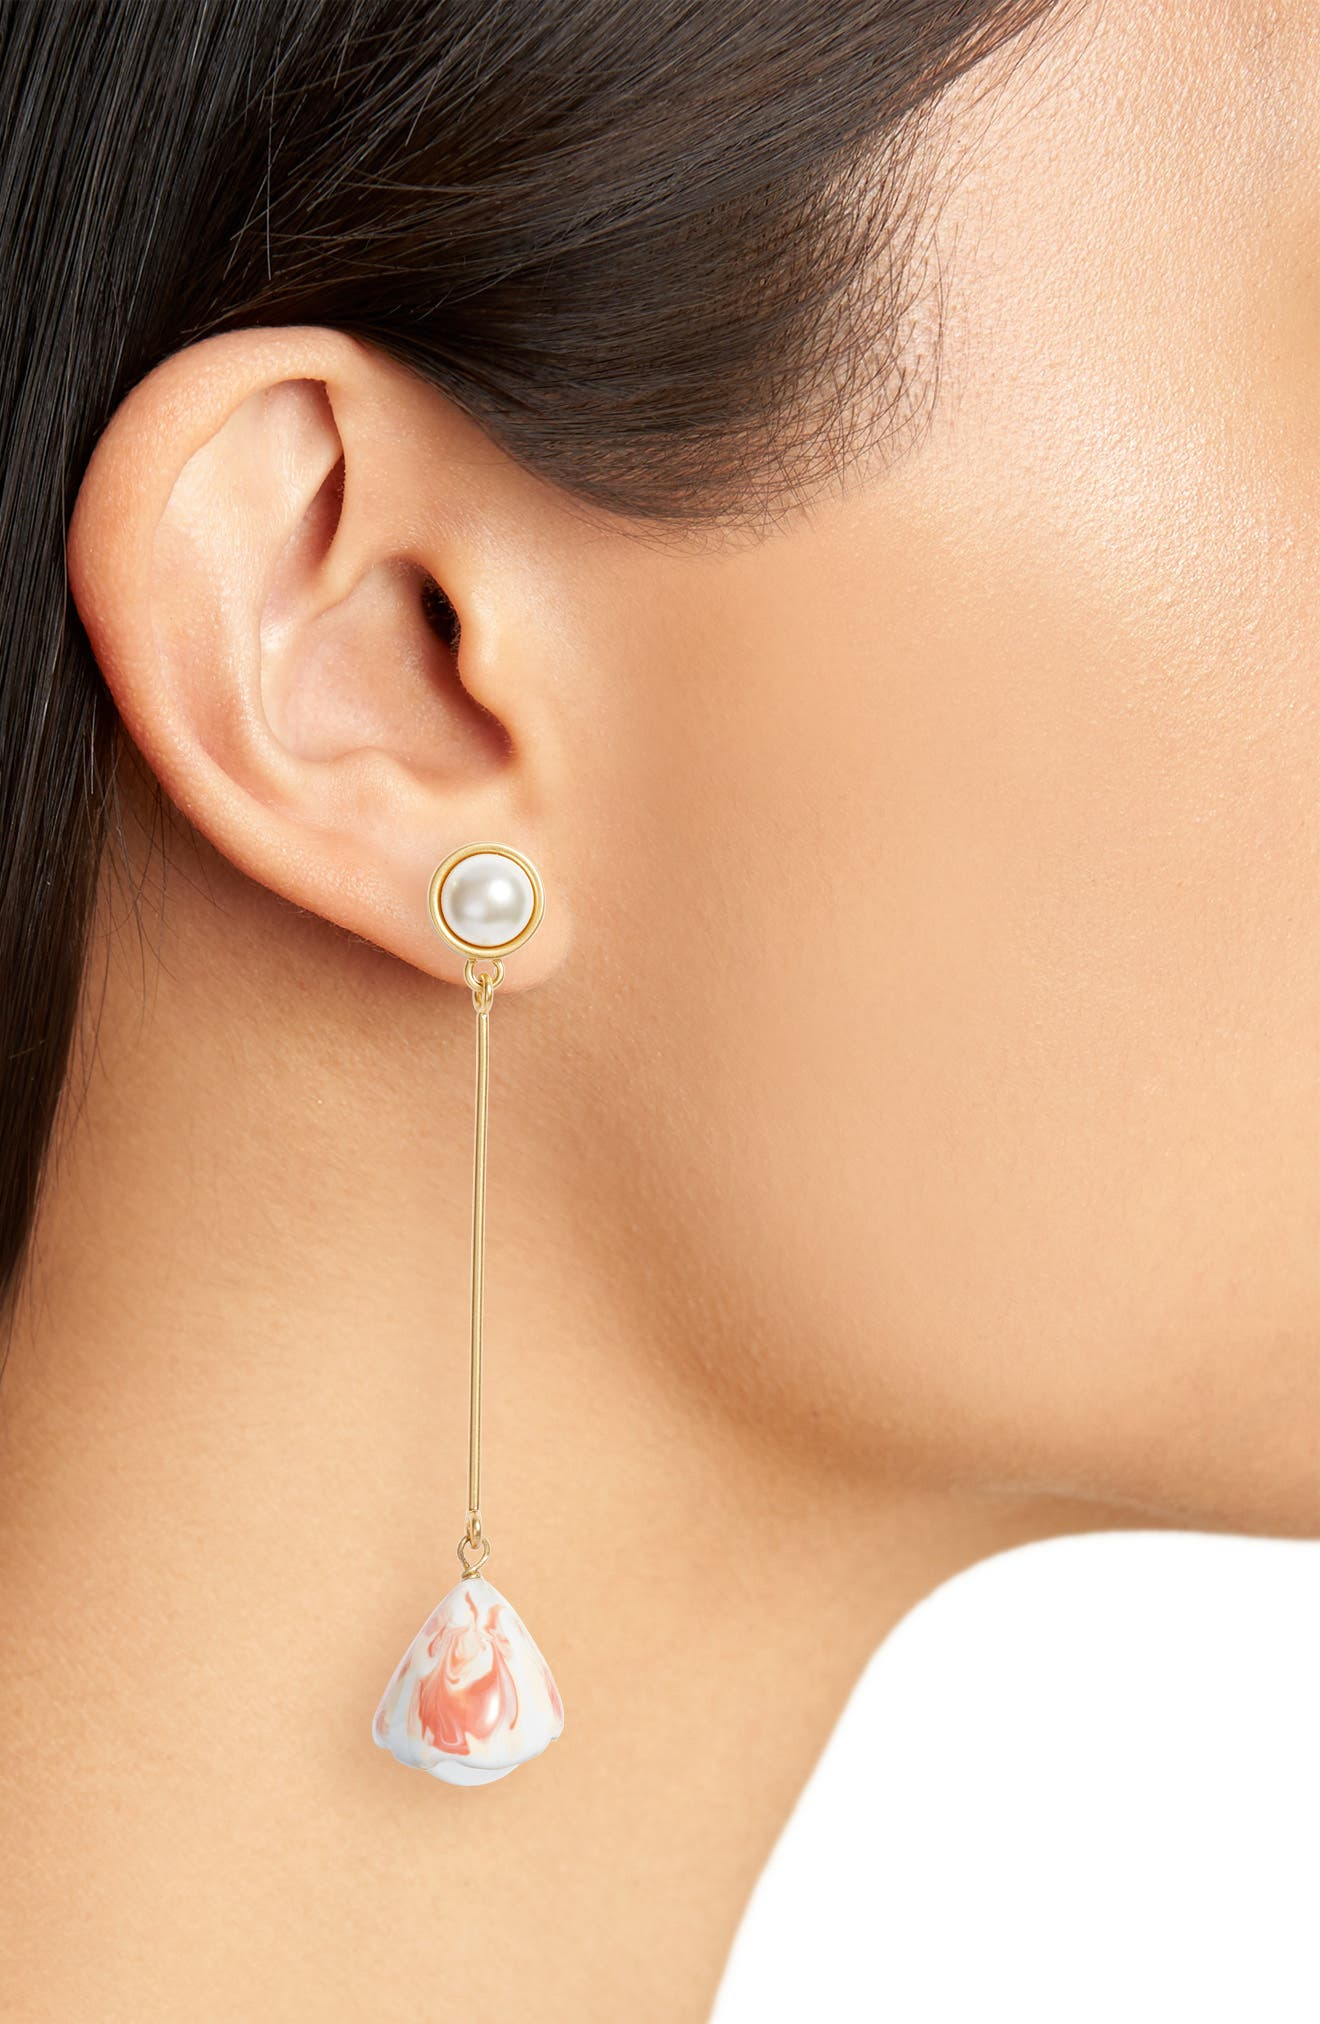 Imitation Pearl Flowerbud Linear Earrings,                             Alternate thumbnail 2, color,                             Blush/ Ivory/ Vintage Gold